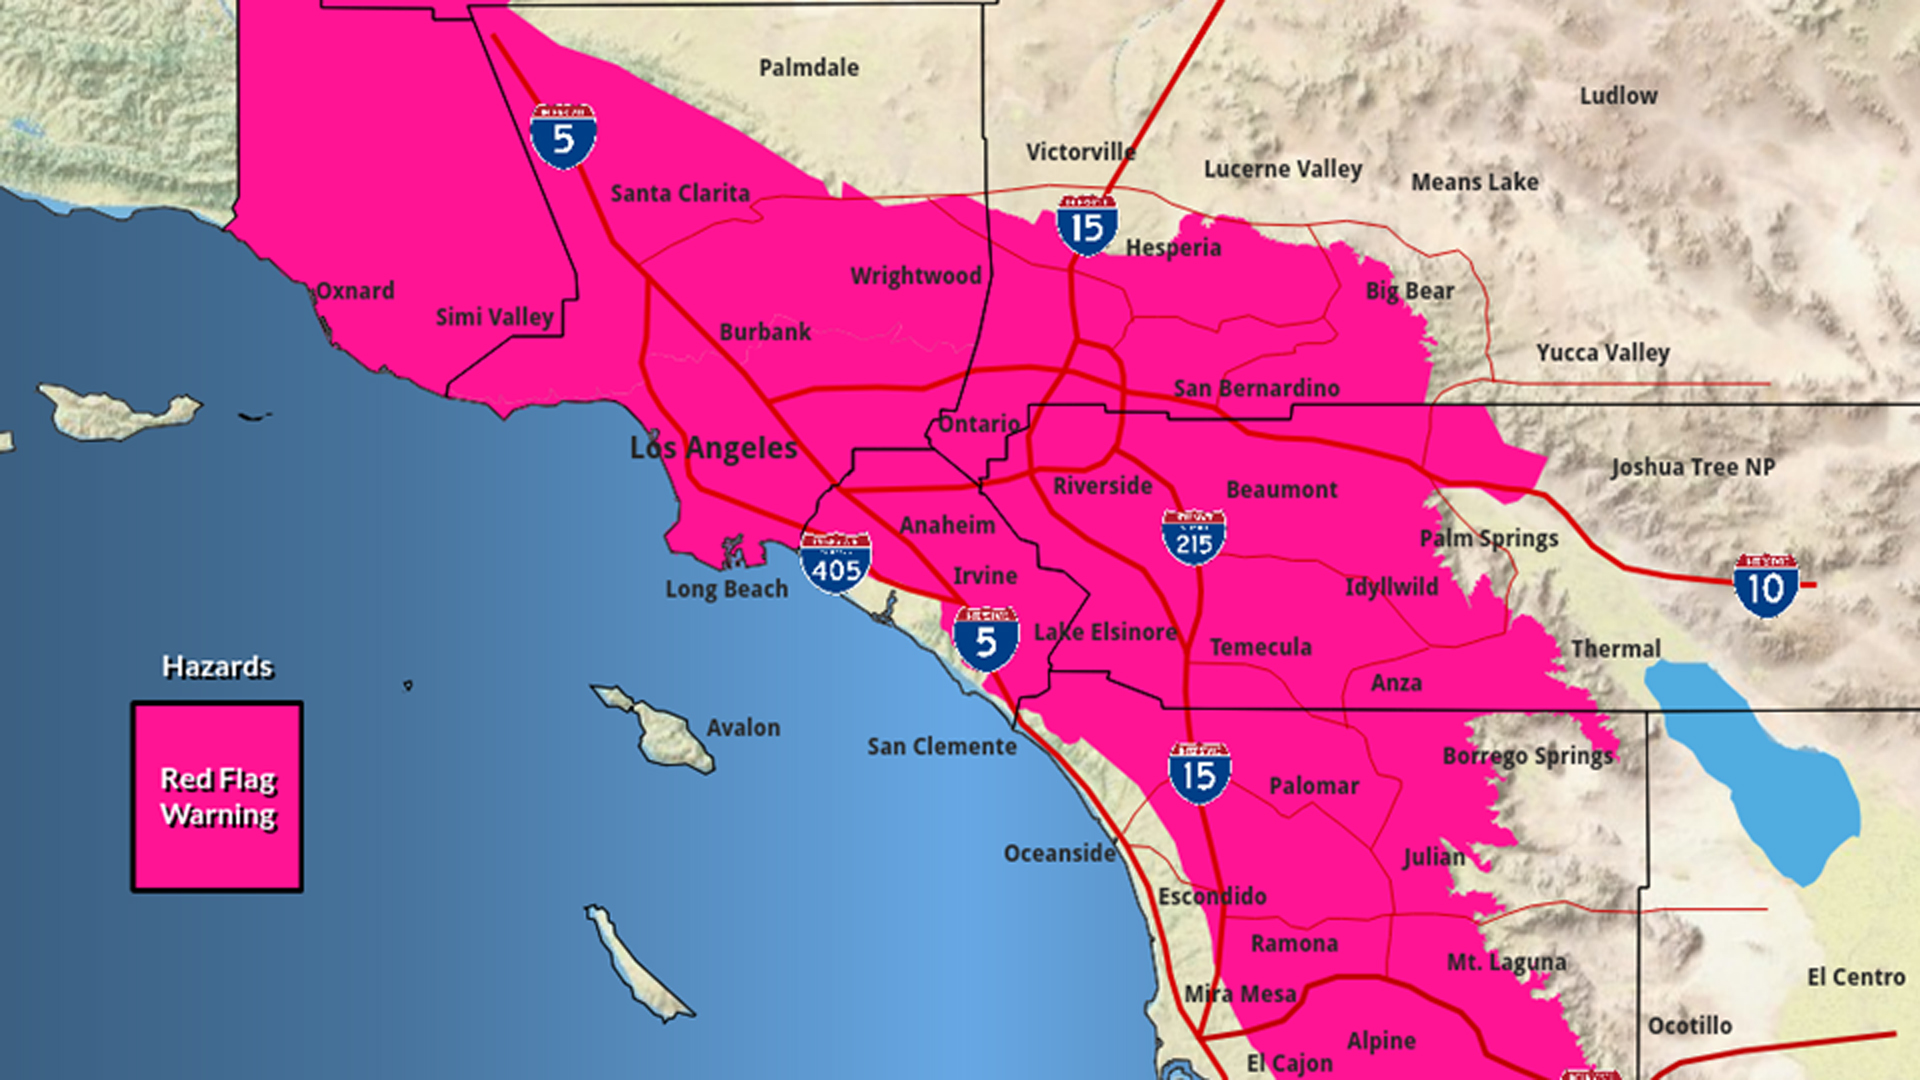 A National Weather Service map shows areas in Southern California that are under a red flag warning through Oct. 25, 2019.